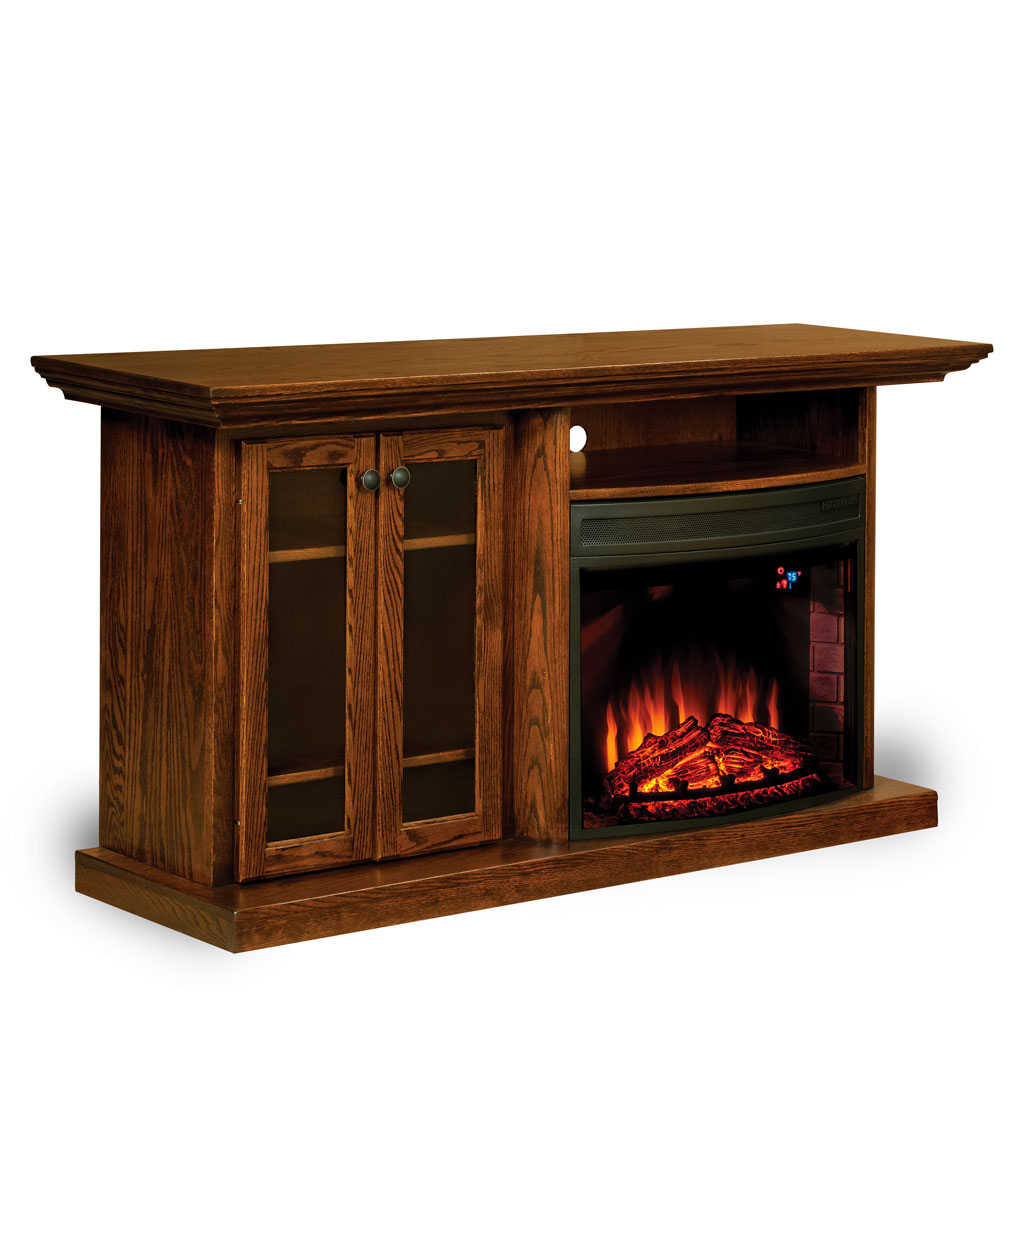 E series tv stand with space heater 203 amish direct for Living room heater